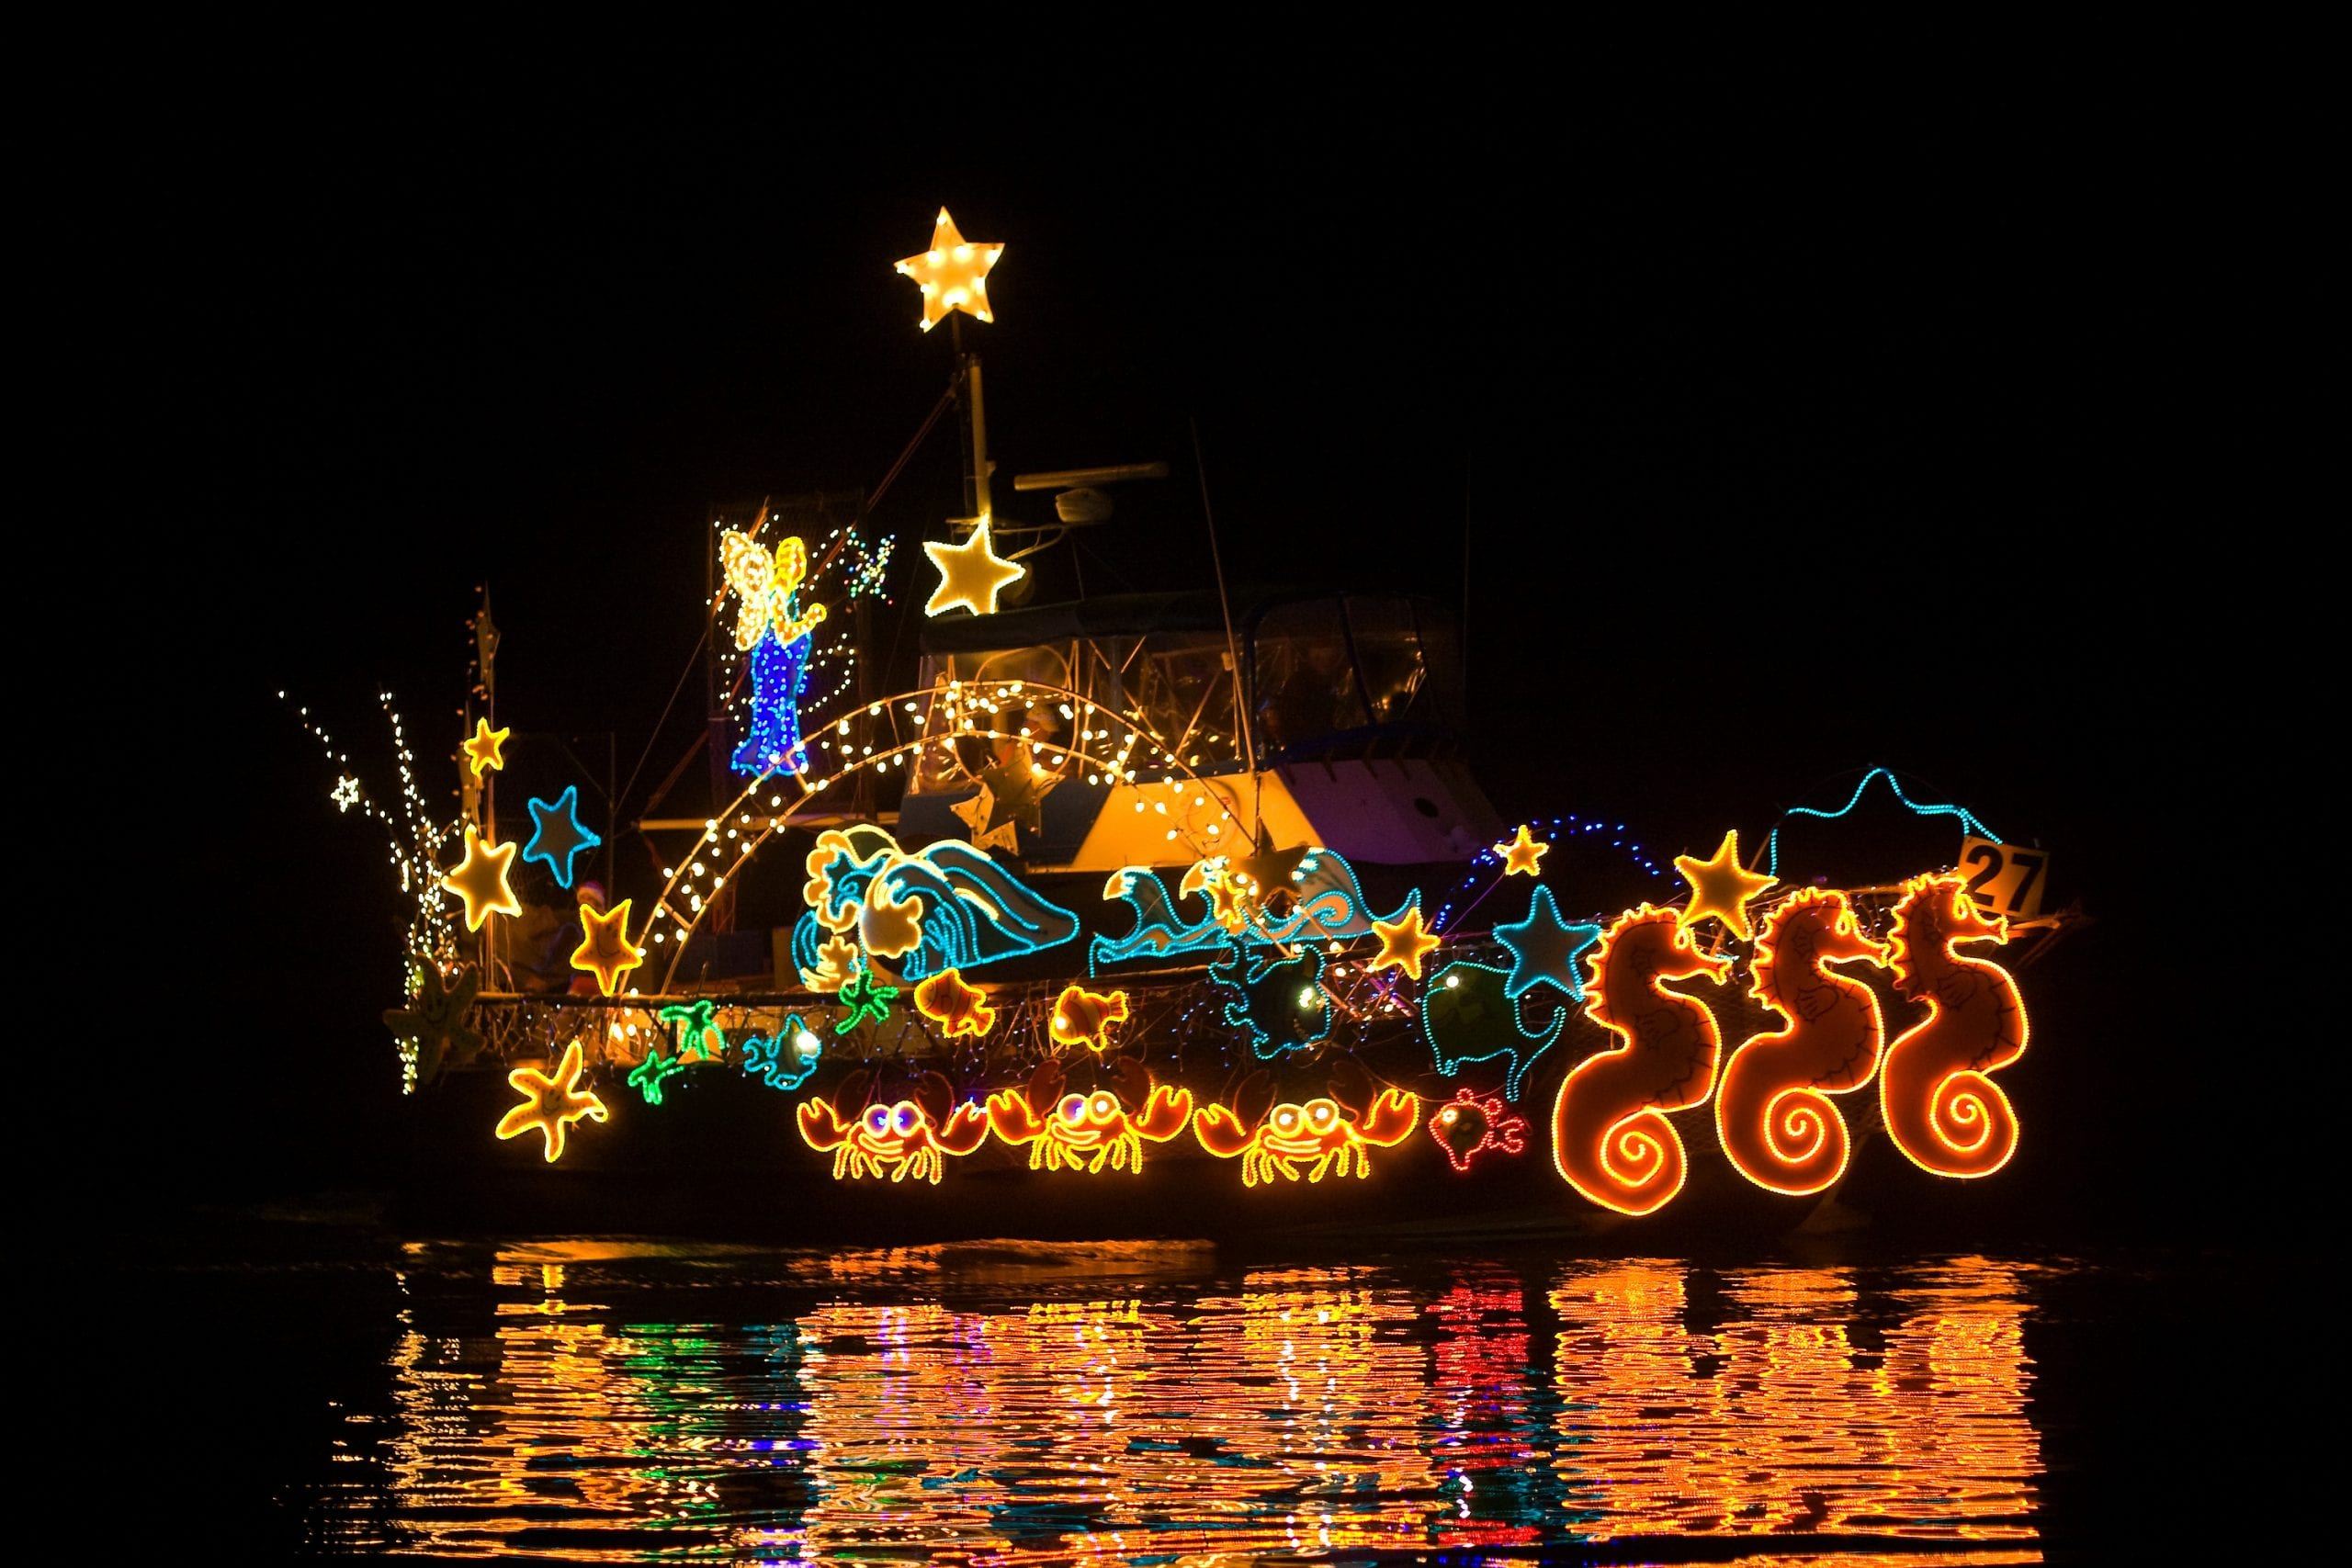 A boat participating in a holiday boat parade covered in lights in the shapes of different sea animals, while gliding along the water and reflecting its light of the water's surface in the dark night